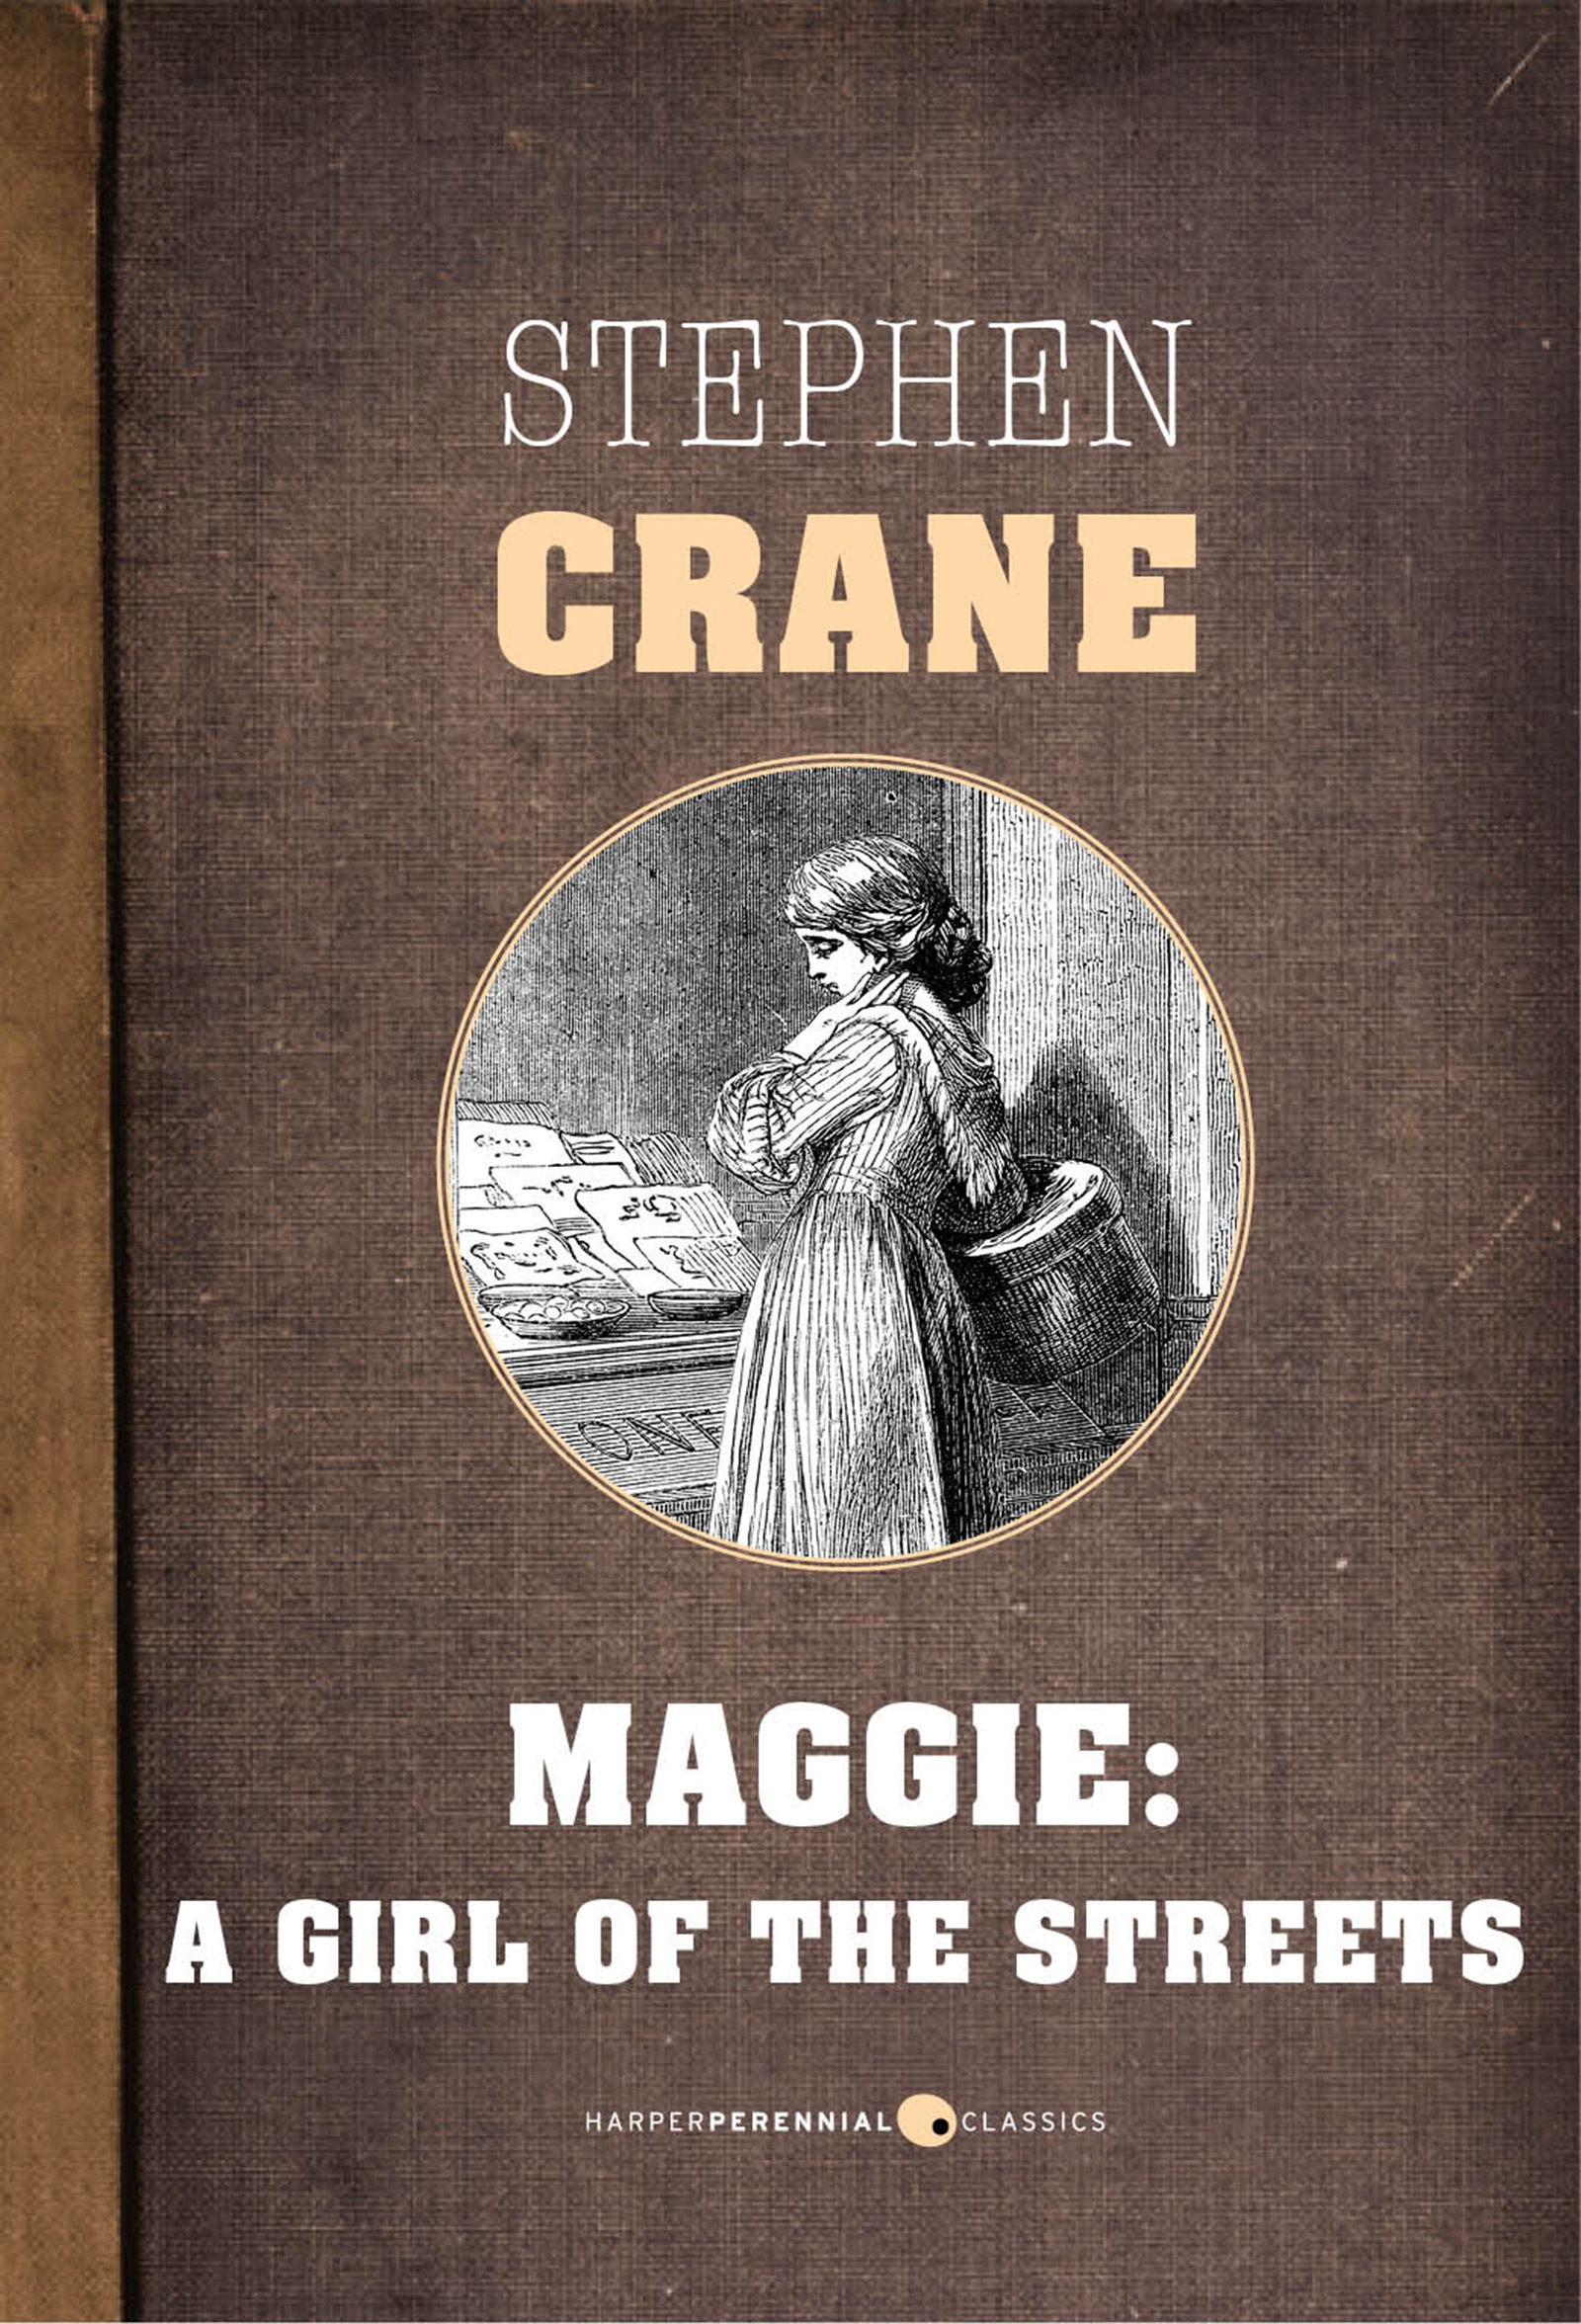 a review of stephen cranes novella maggie a girl of the streets